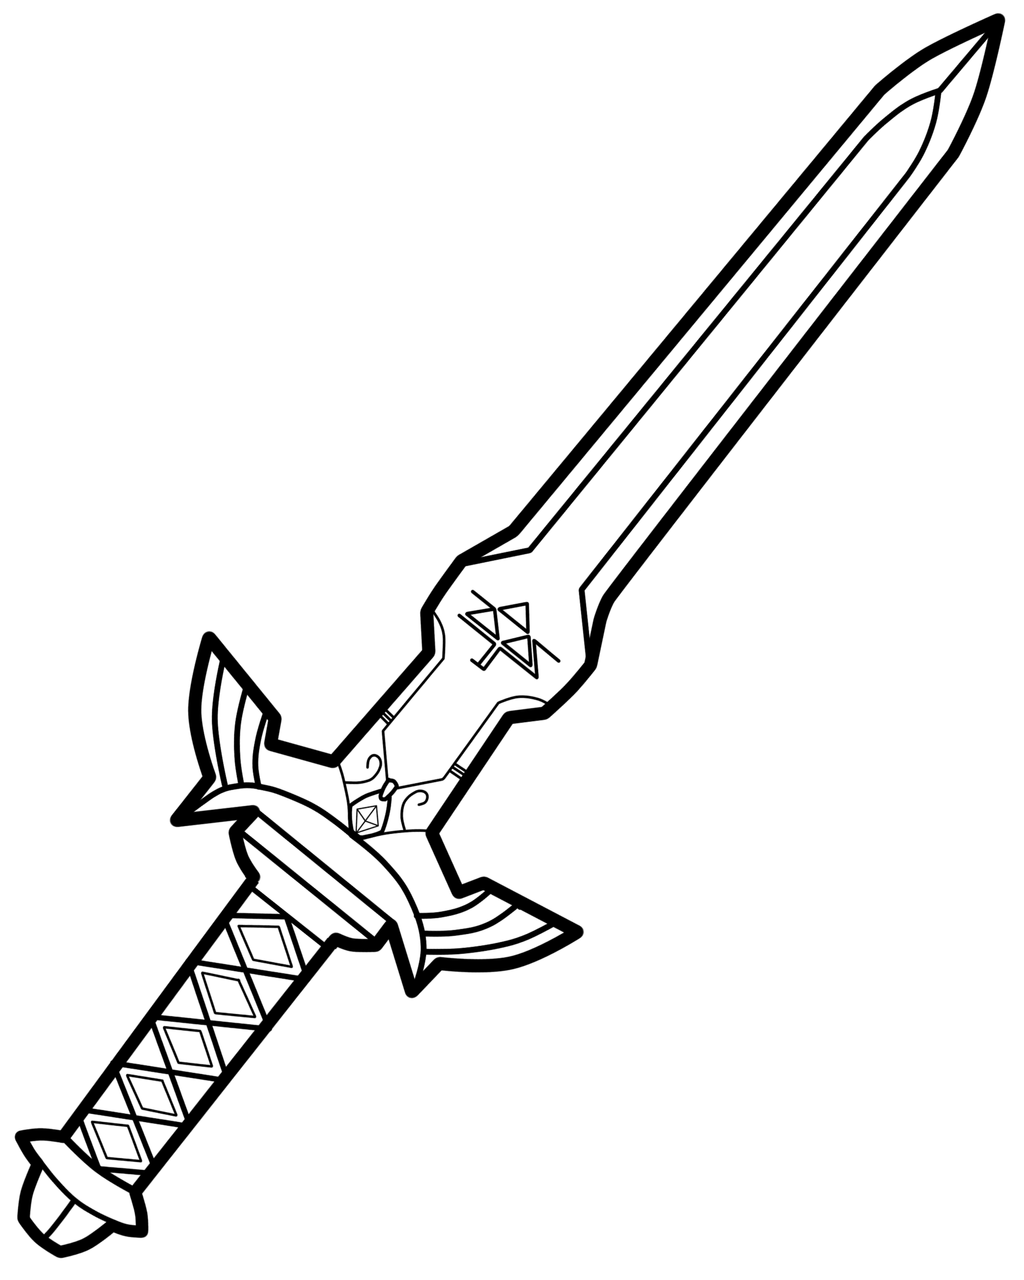 coloring pages with swords | Sword Coloring Pages Weapons Sketch Coloring Page